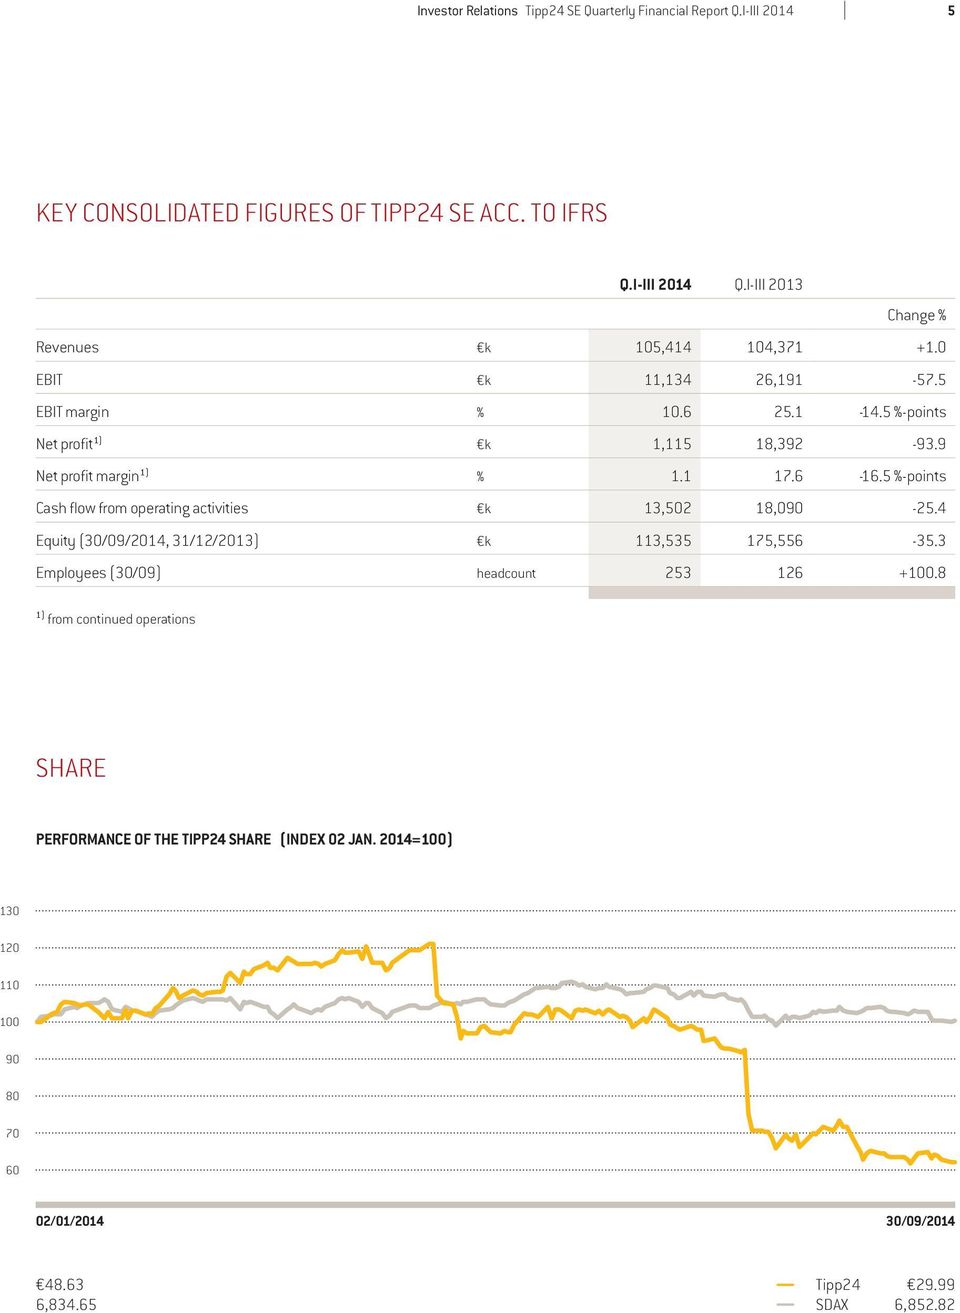 9 Net profit margin 1) % 1.1 17.6-16.5 %-points Cash flow from operating activities k 13,502 18,090-25.4 Equity (30/09/2014, 31/12/2013) k 113,535 175,556-35.